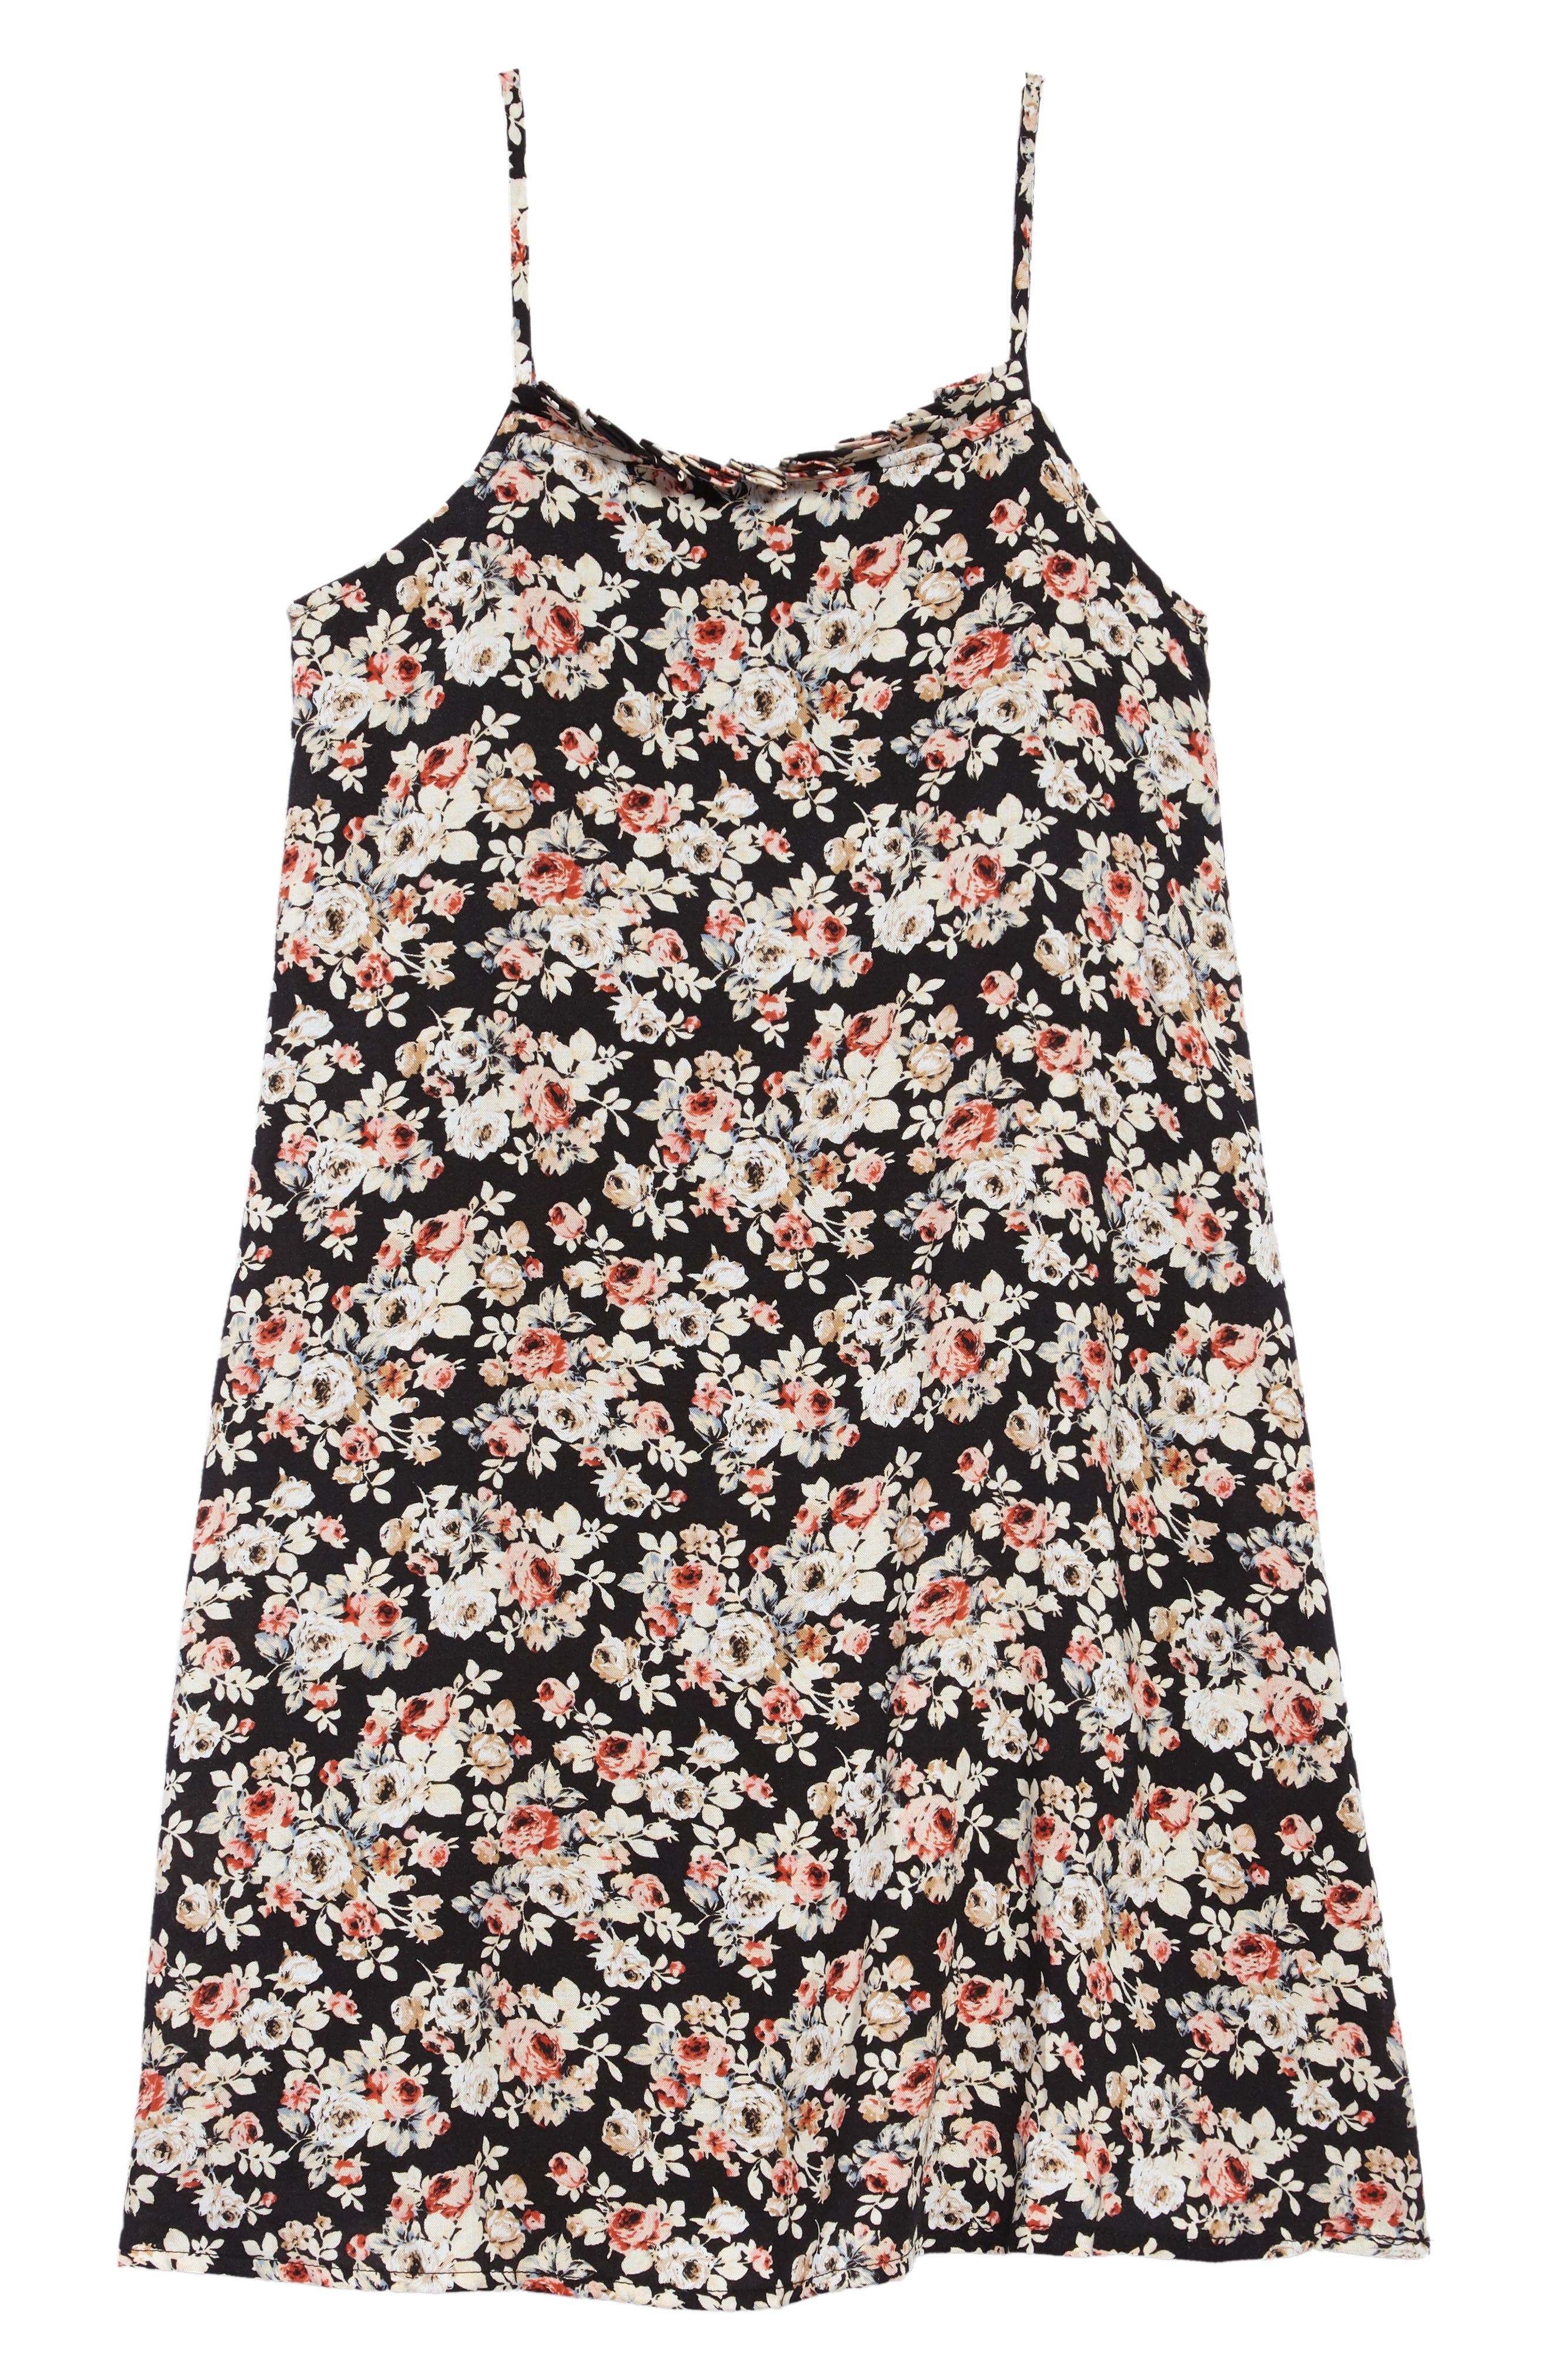 Floral Shift Dress,                             Main thumbnail 1, color,                             Black Floral